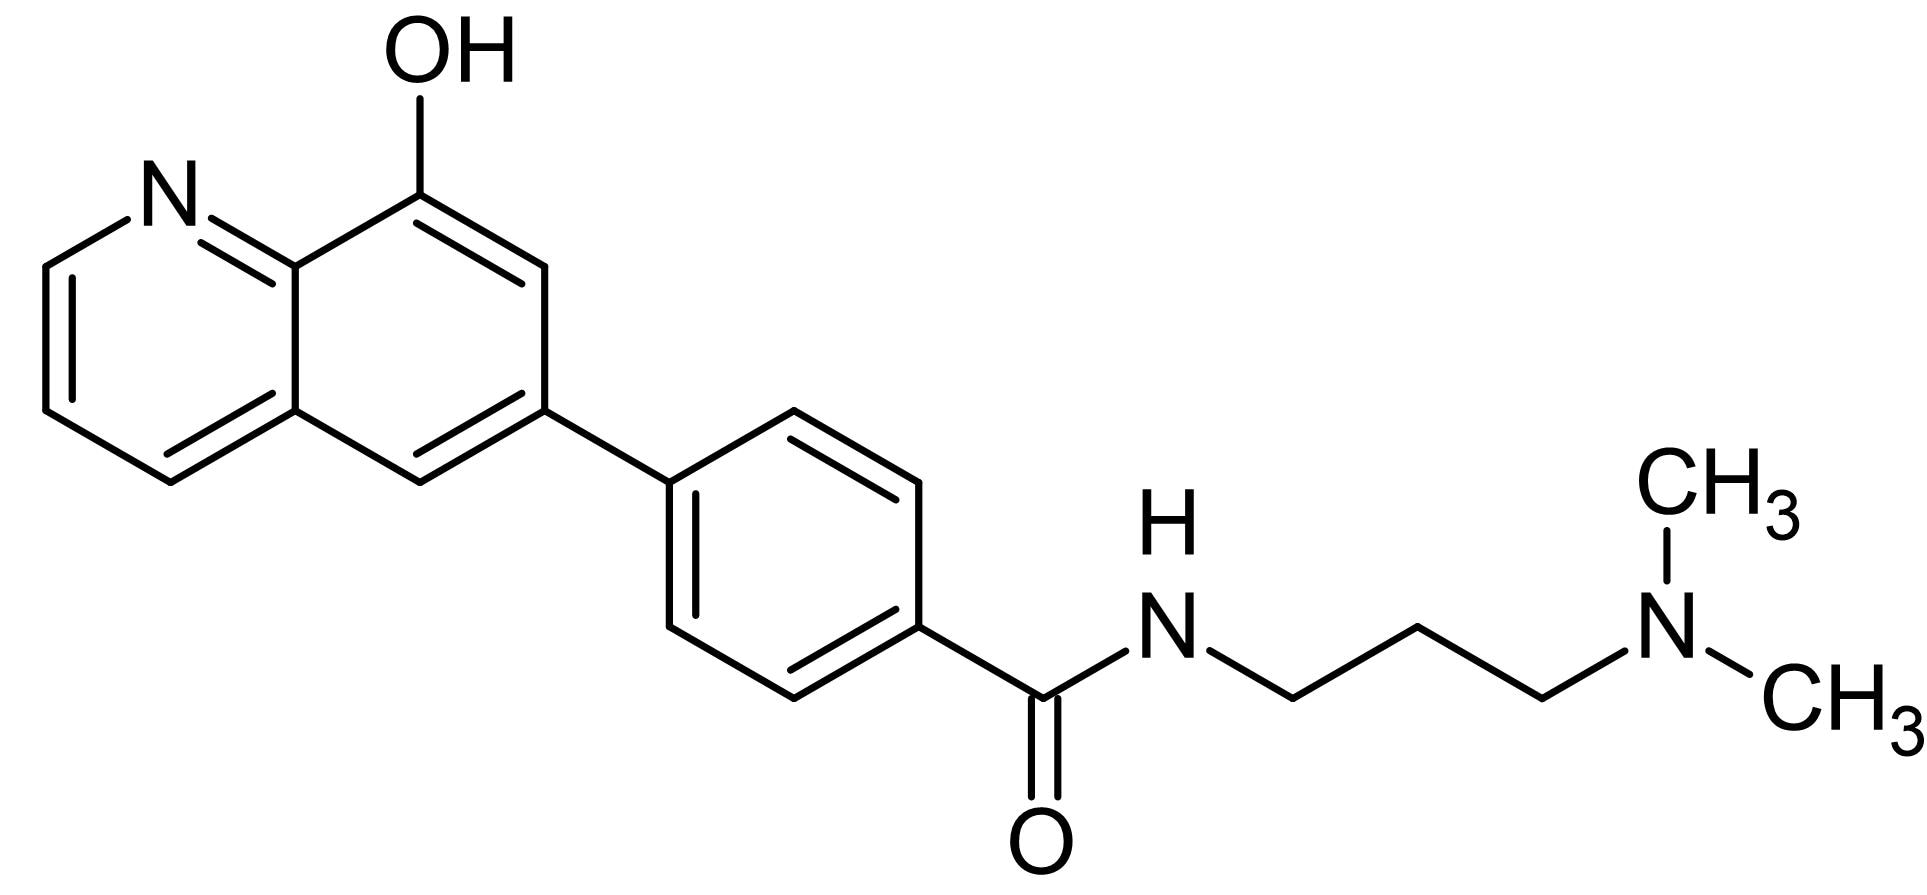 Chemical Structure - ML-324, JMJD2 inhibitor (ab146175)